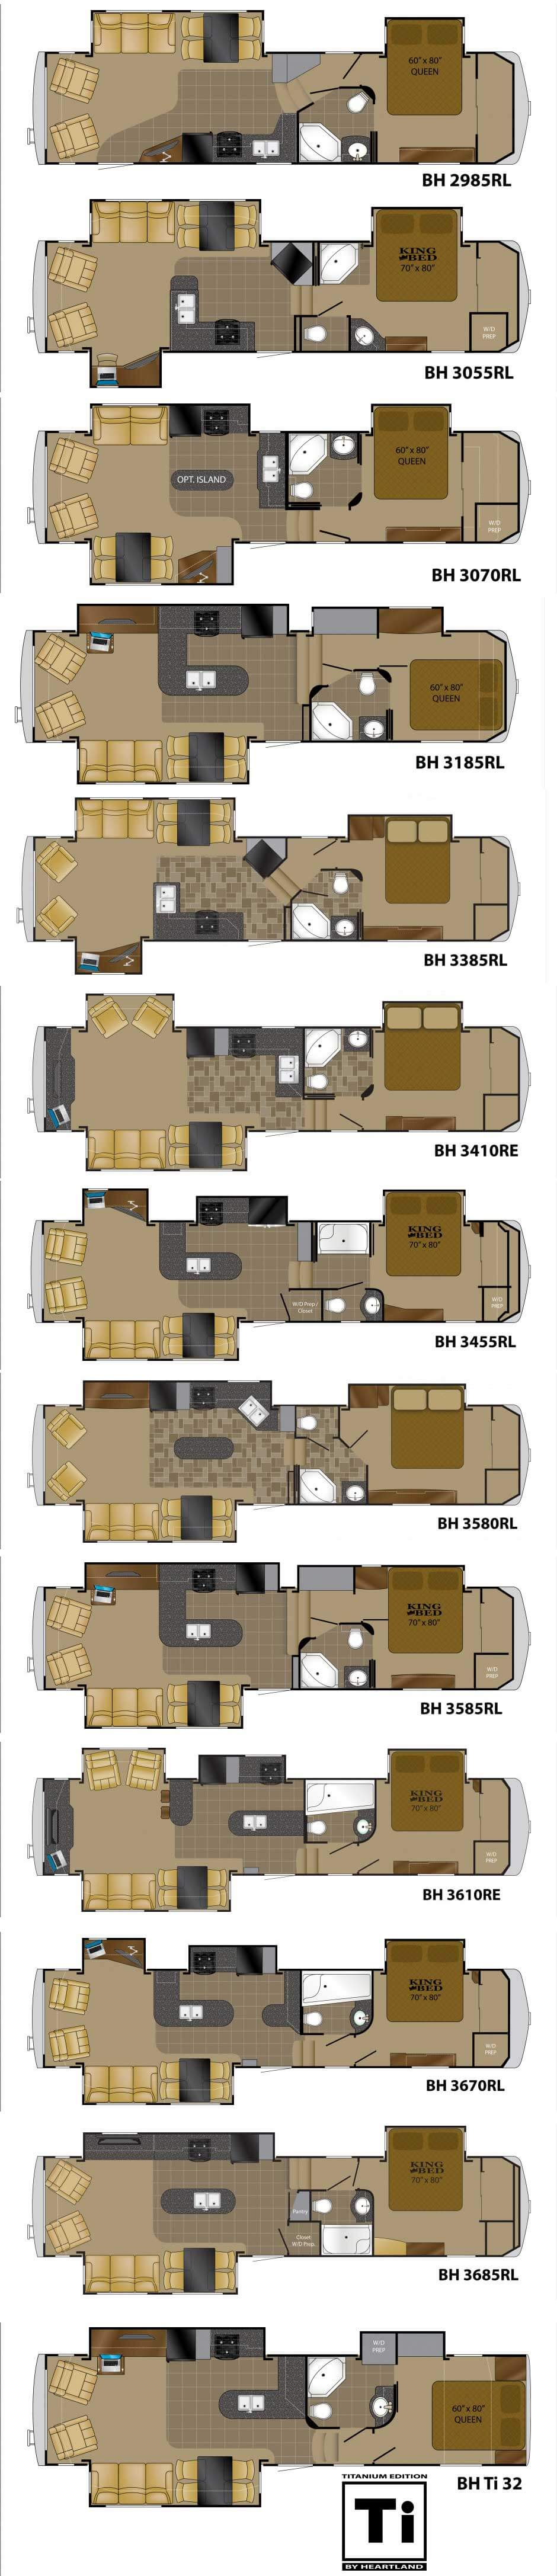 heartland-bighorn-fifth-wheel-floorplans